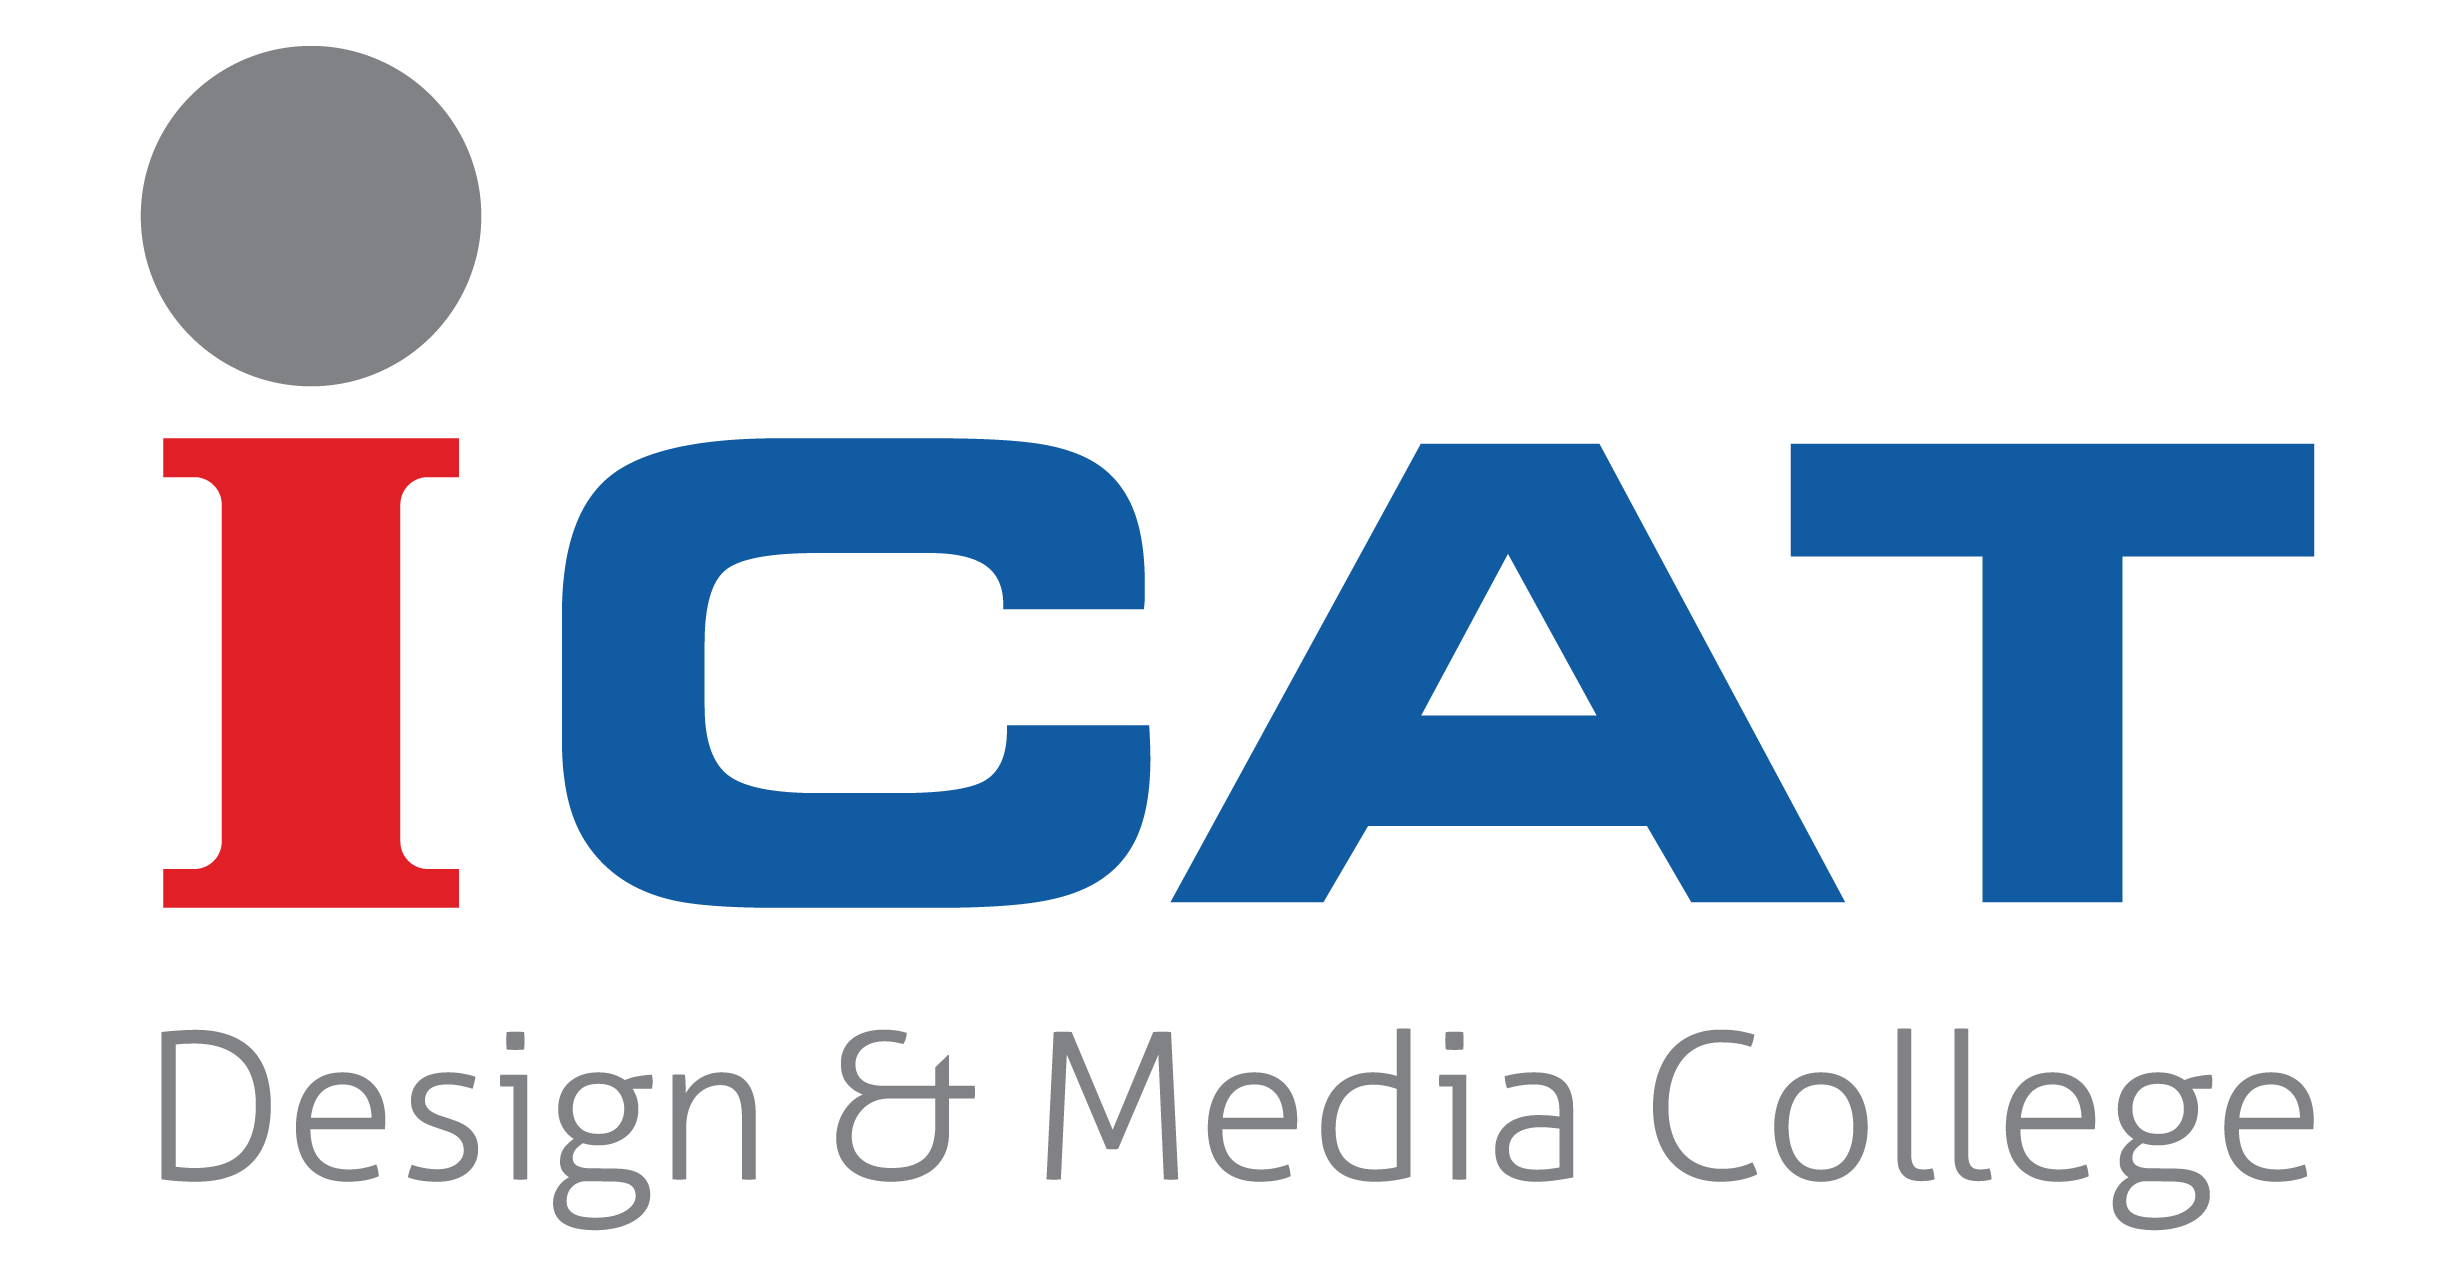 Icat Design Media College Wikipedia